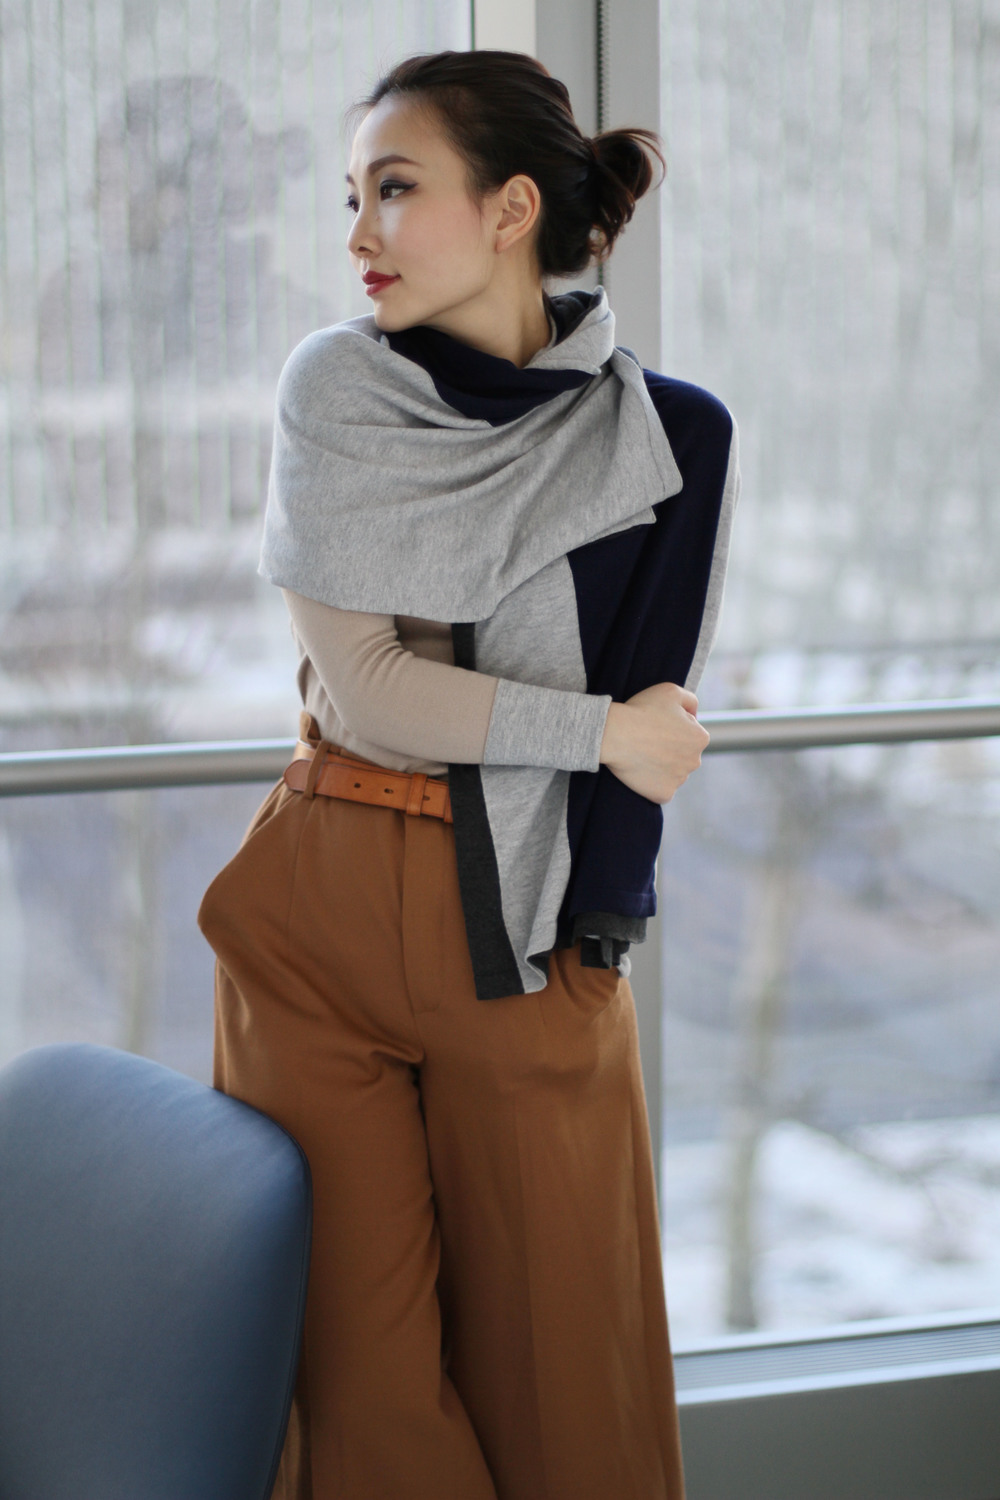 jia collection scarf top 6.jpg